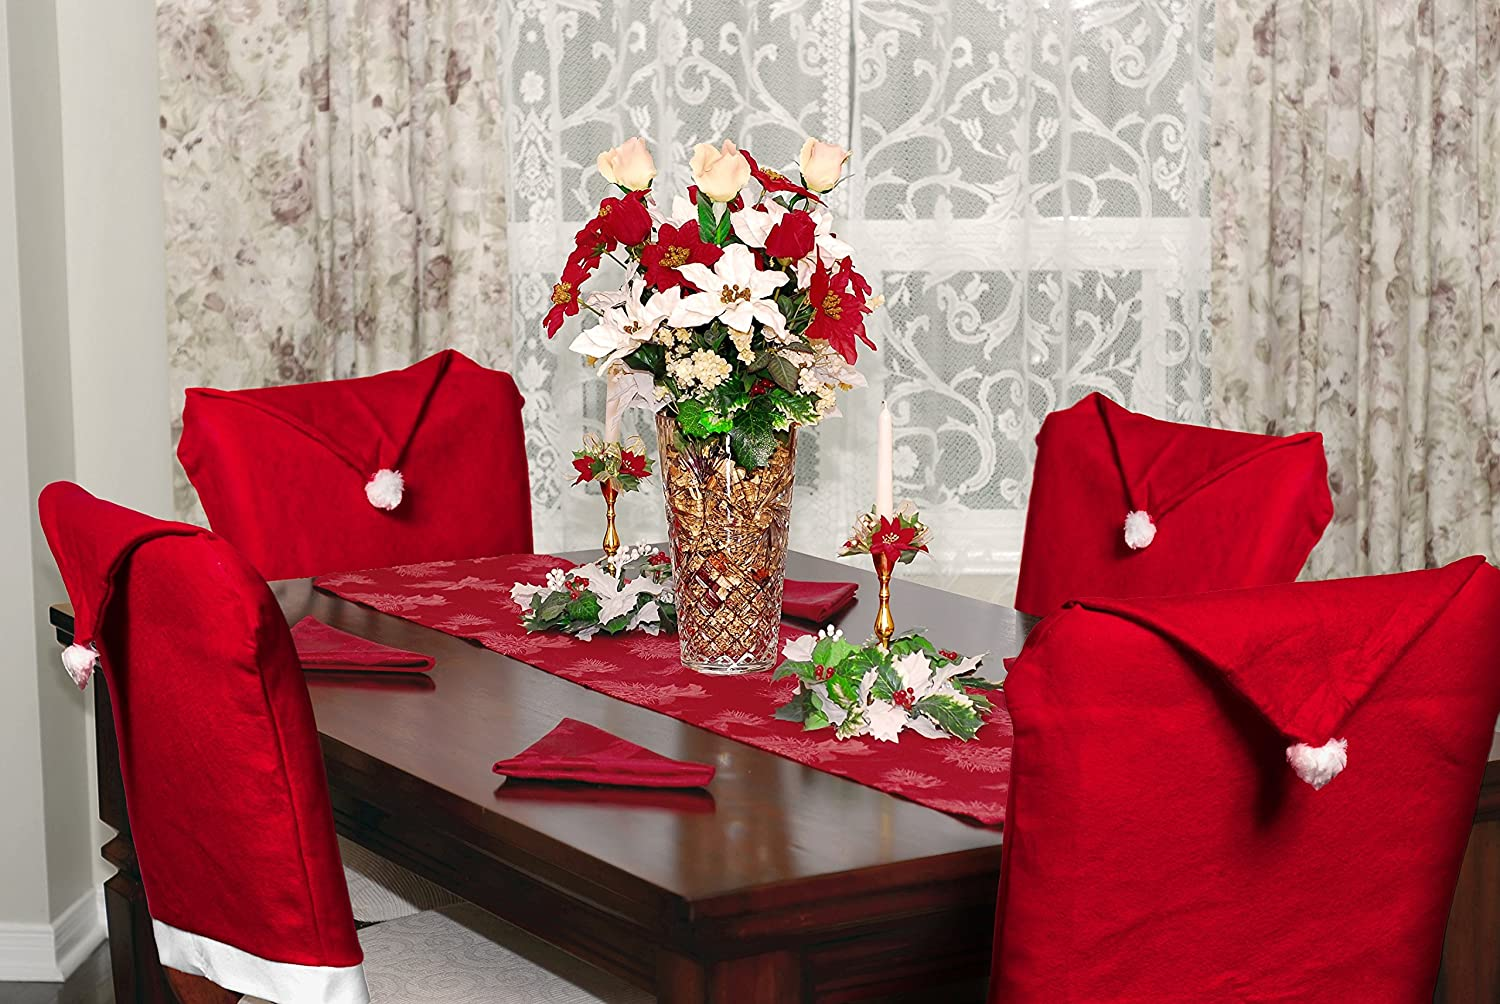 Imperial Home Christmas Decorations Dining Room Chair Covers (Santa's Hat, Set of 4)